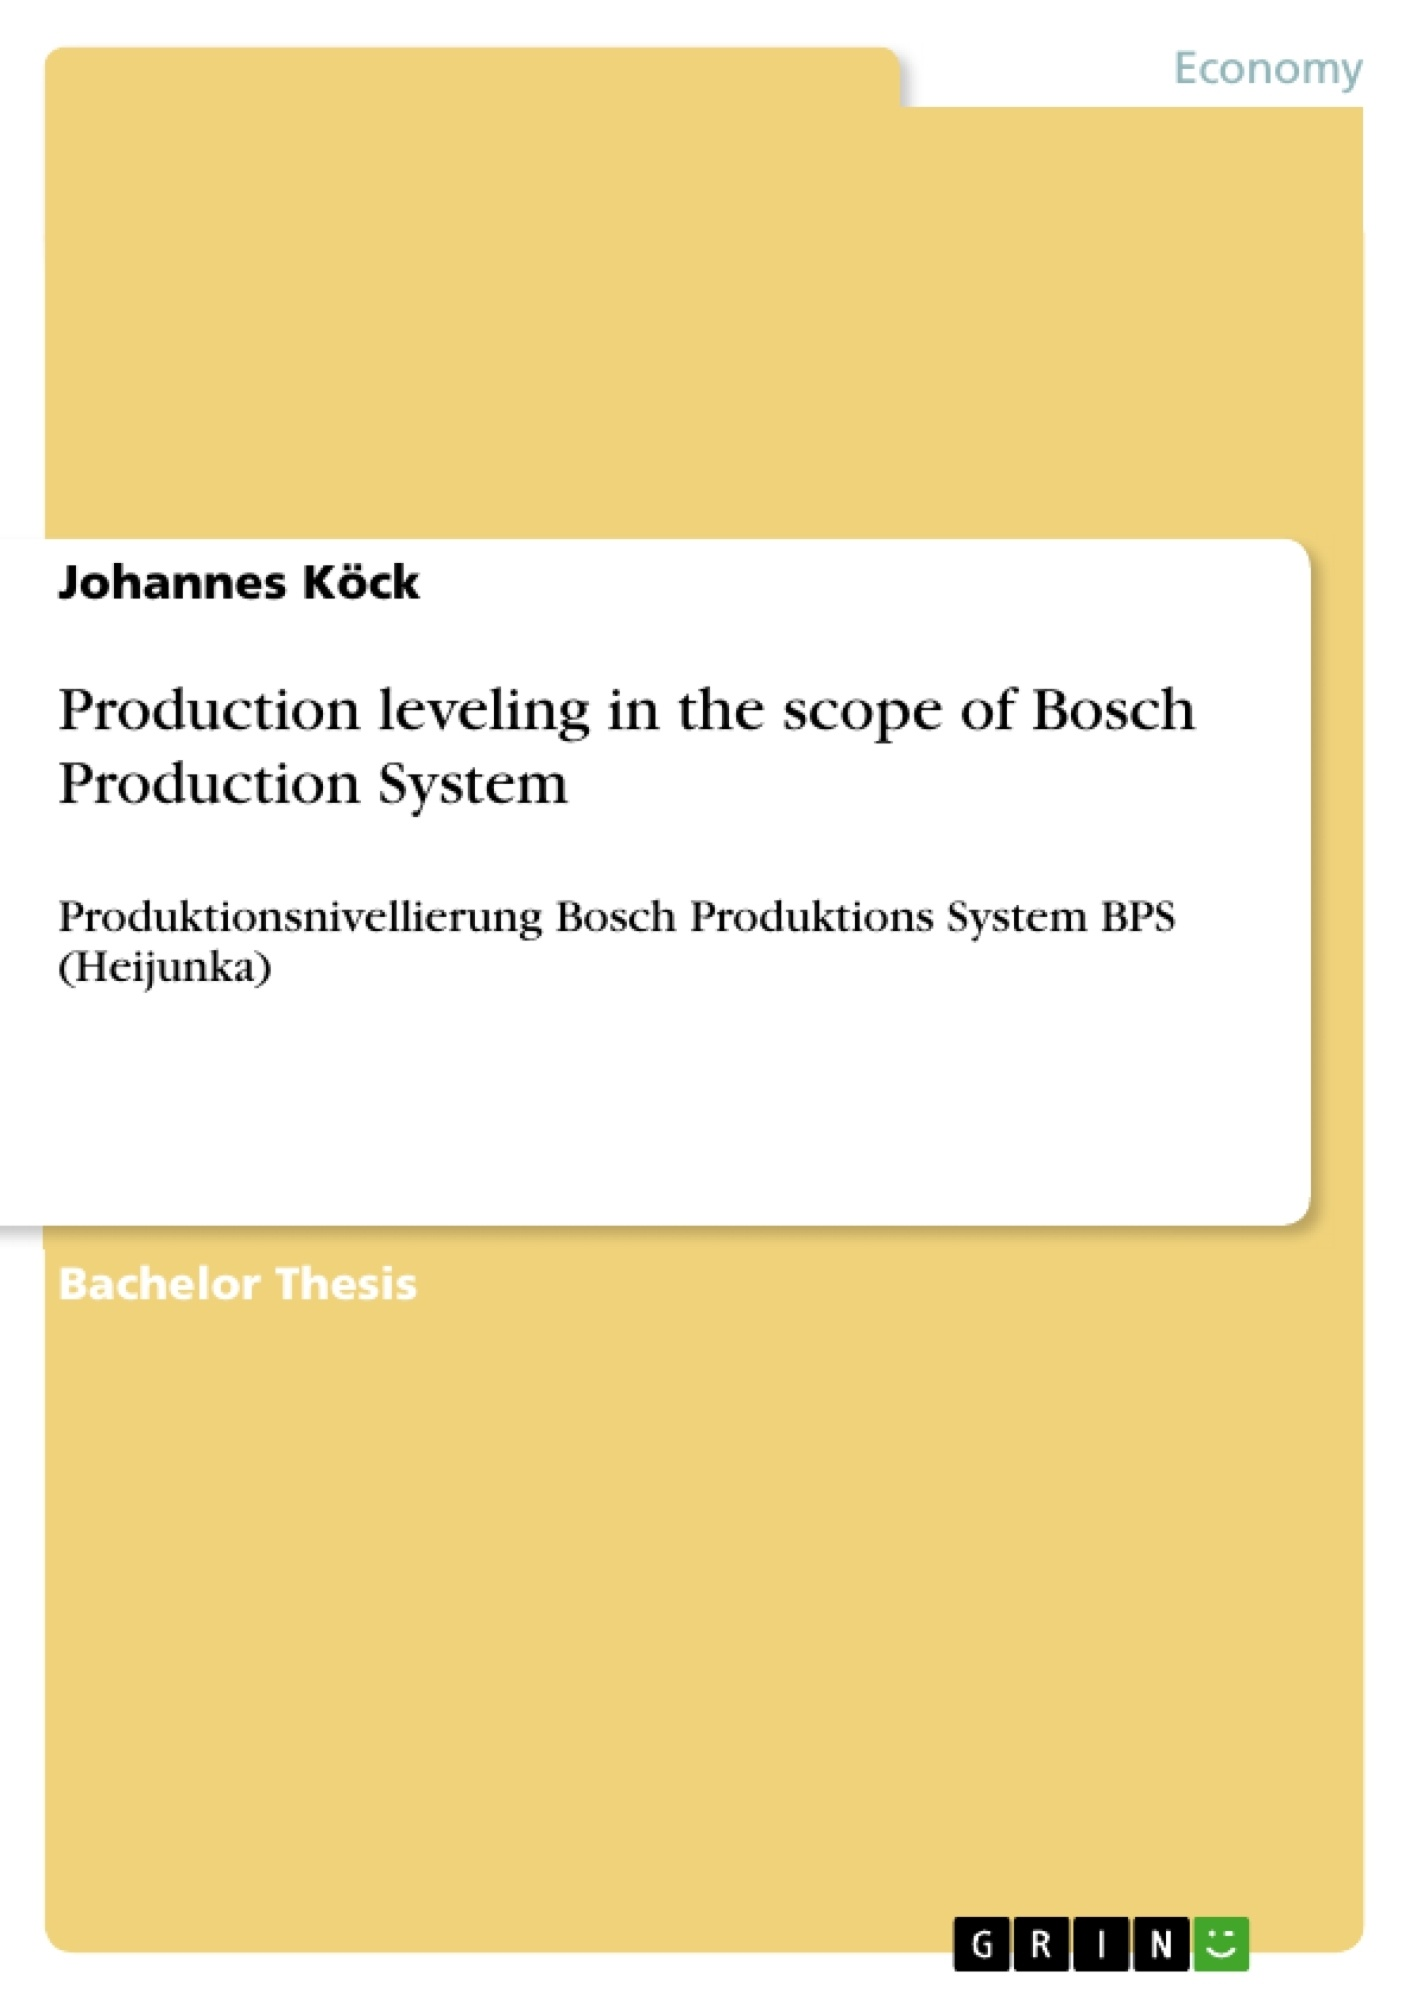 Title: Production leveling in the scope of Bosch Production System